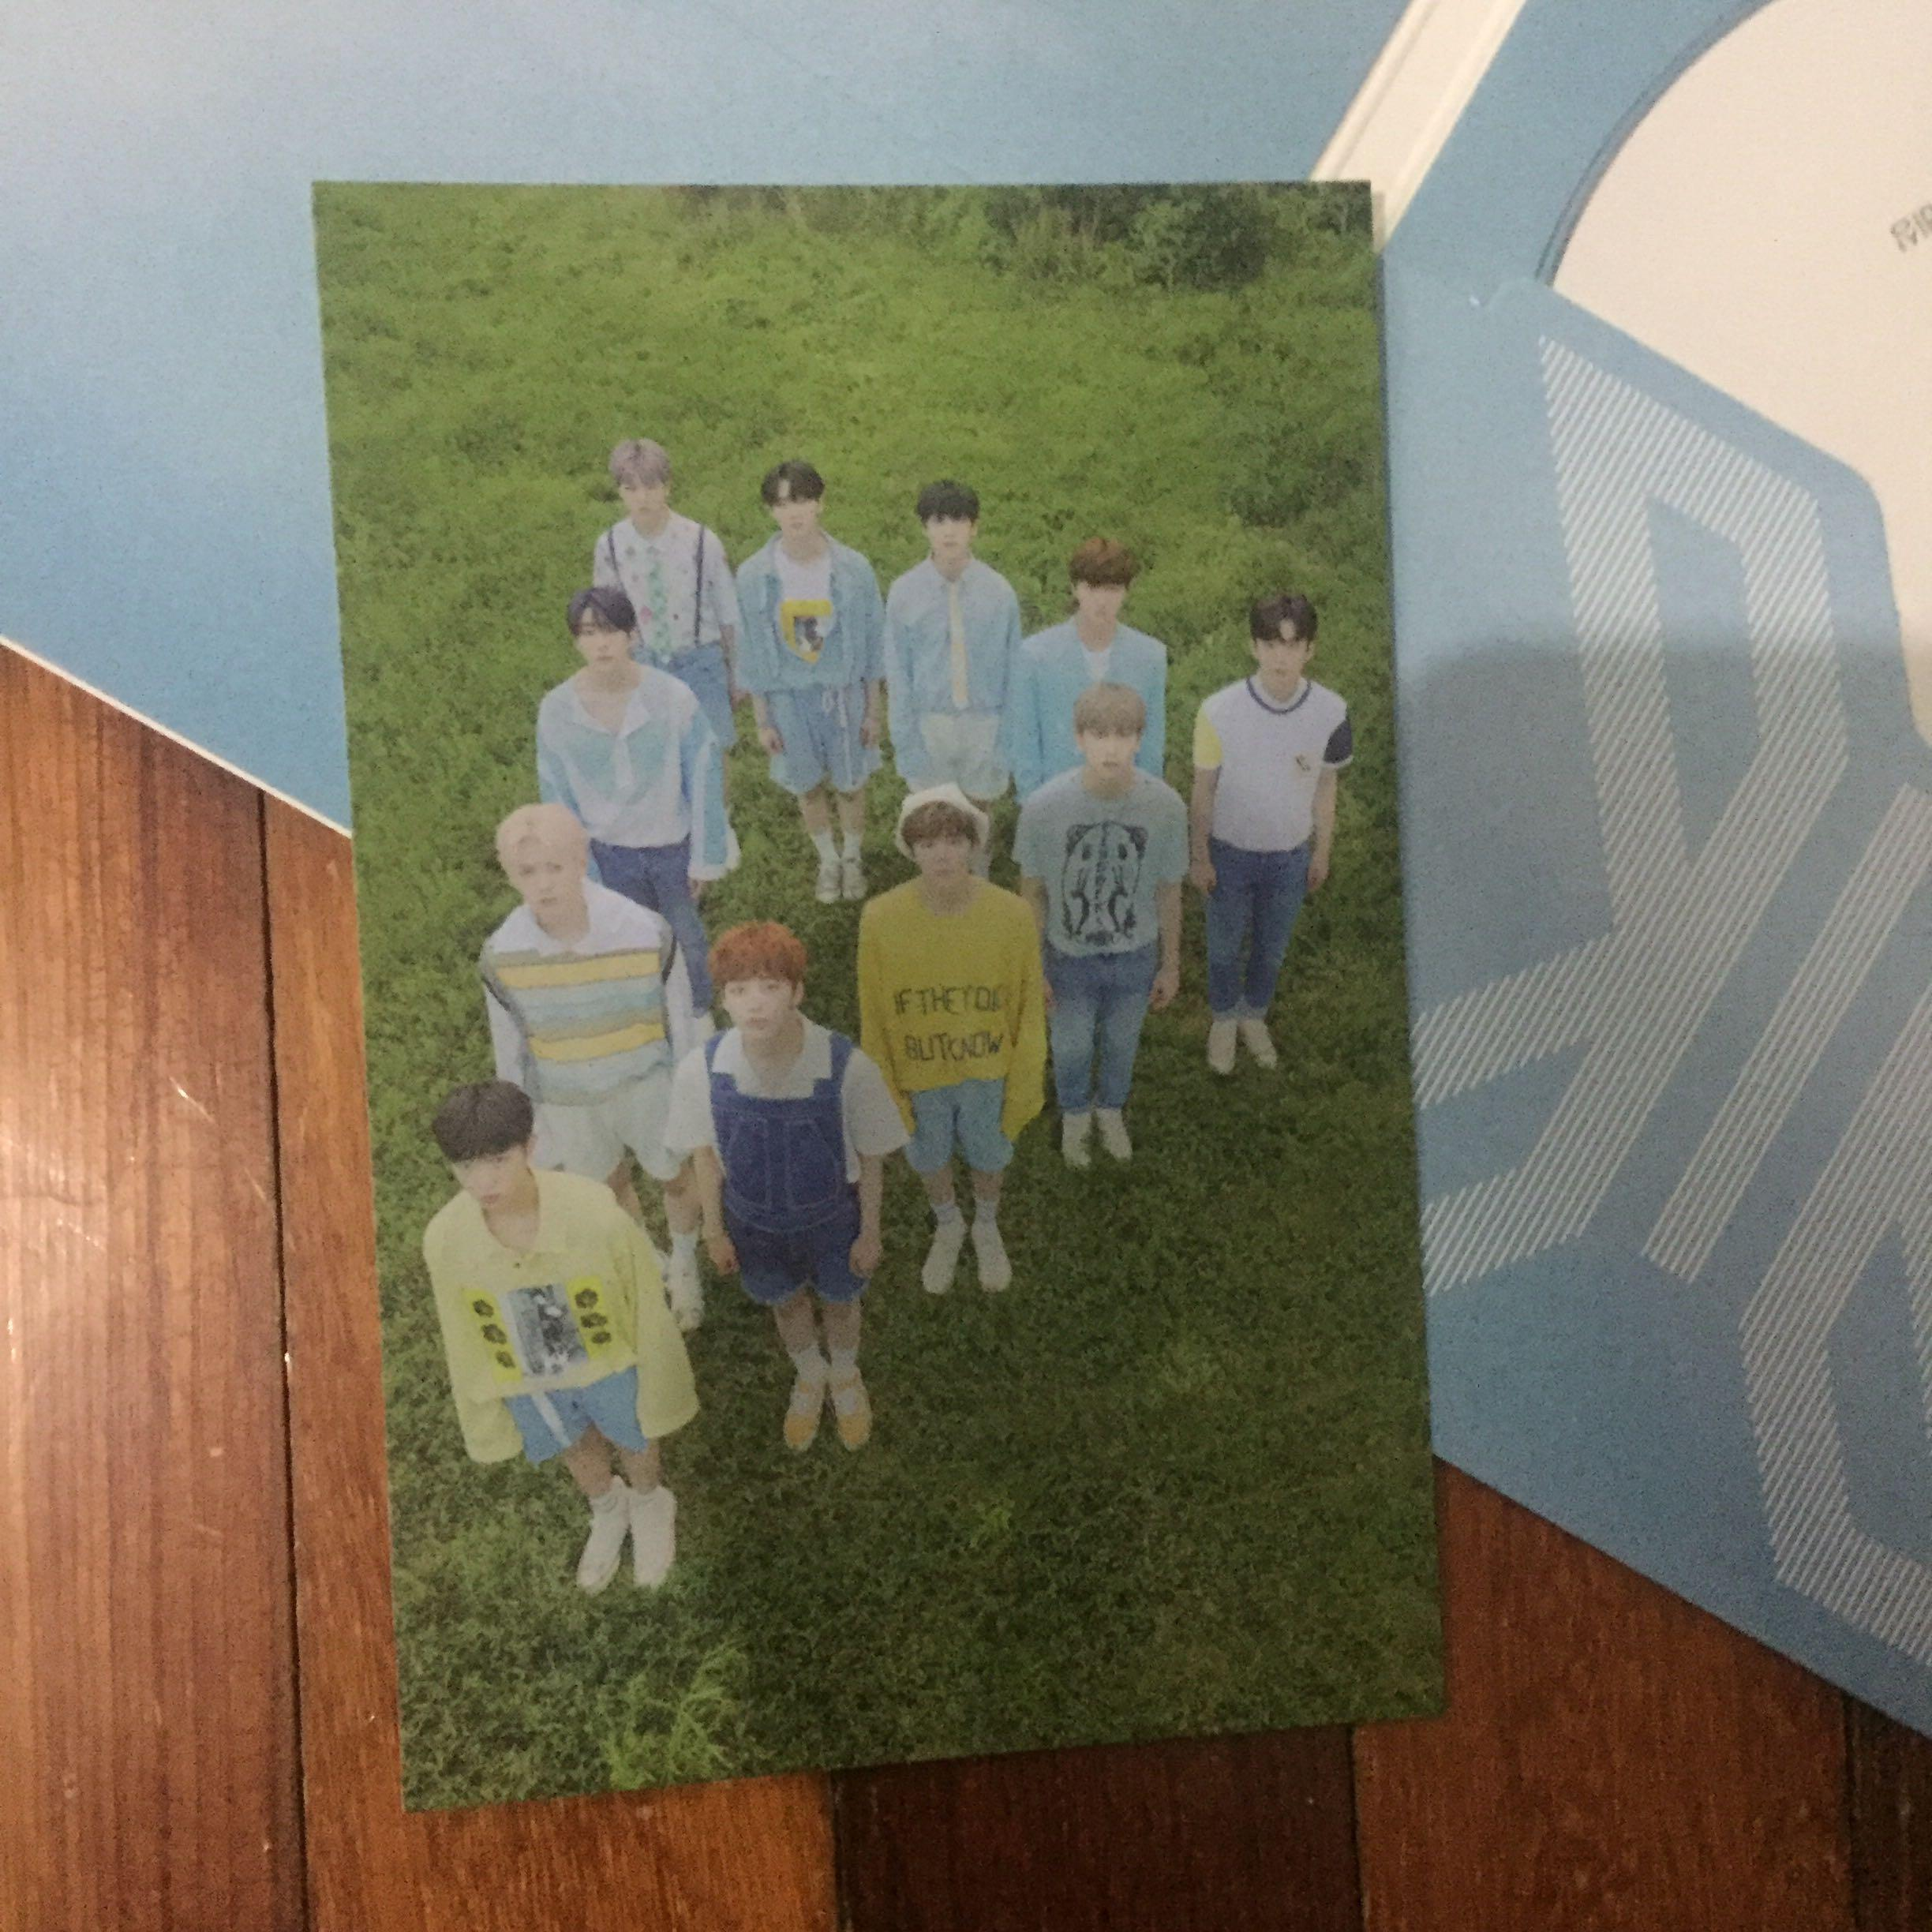 [WTS] X1 1st Mini Album 비상 (Bisang) White Version with Dohyun Standee